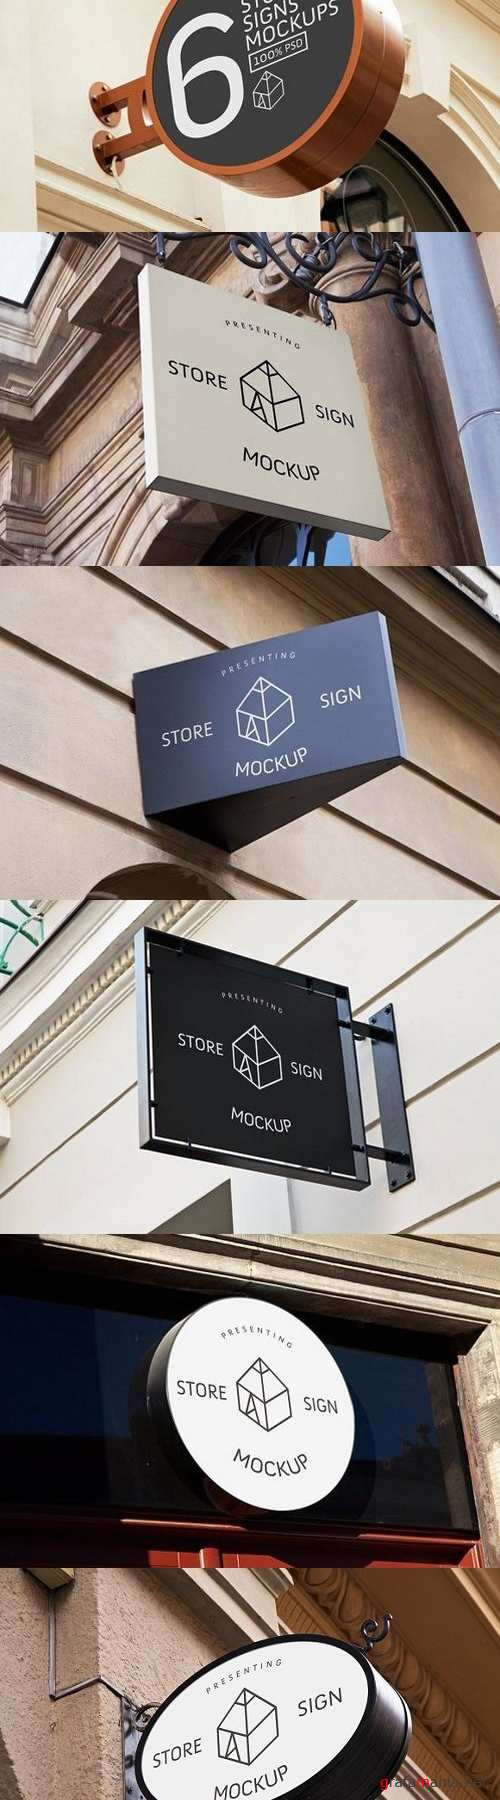 Store Signs Mock-Ups 680201